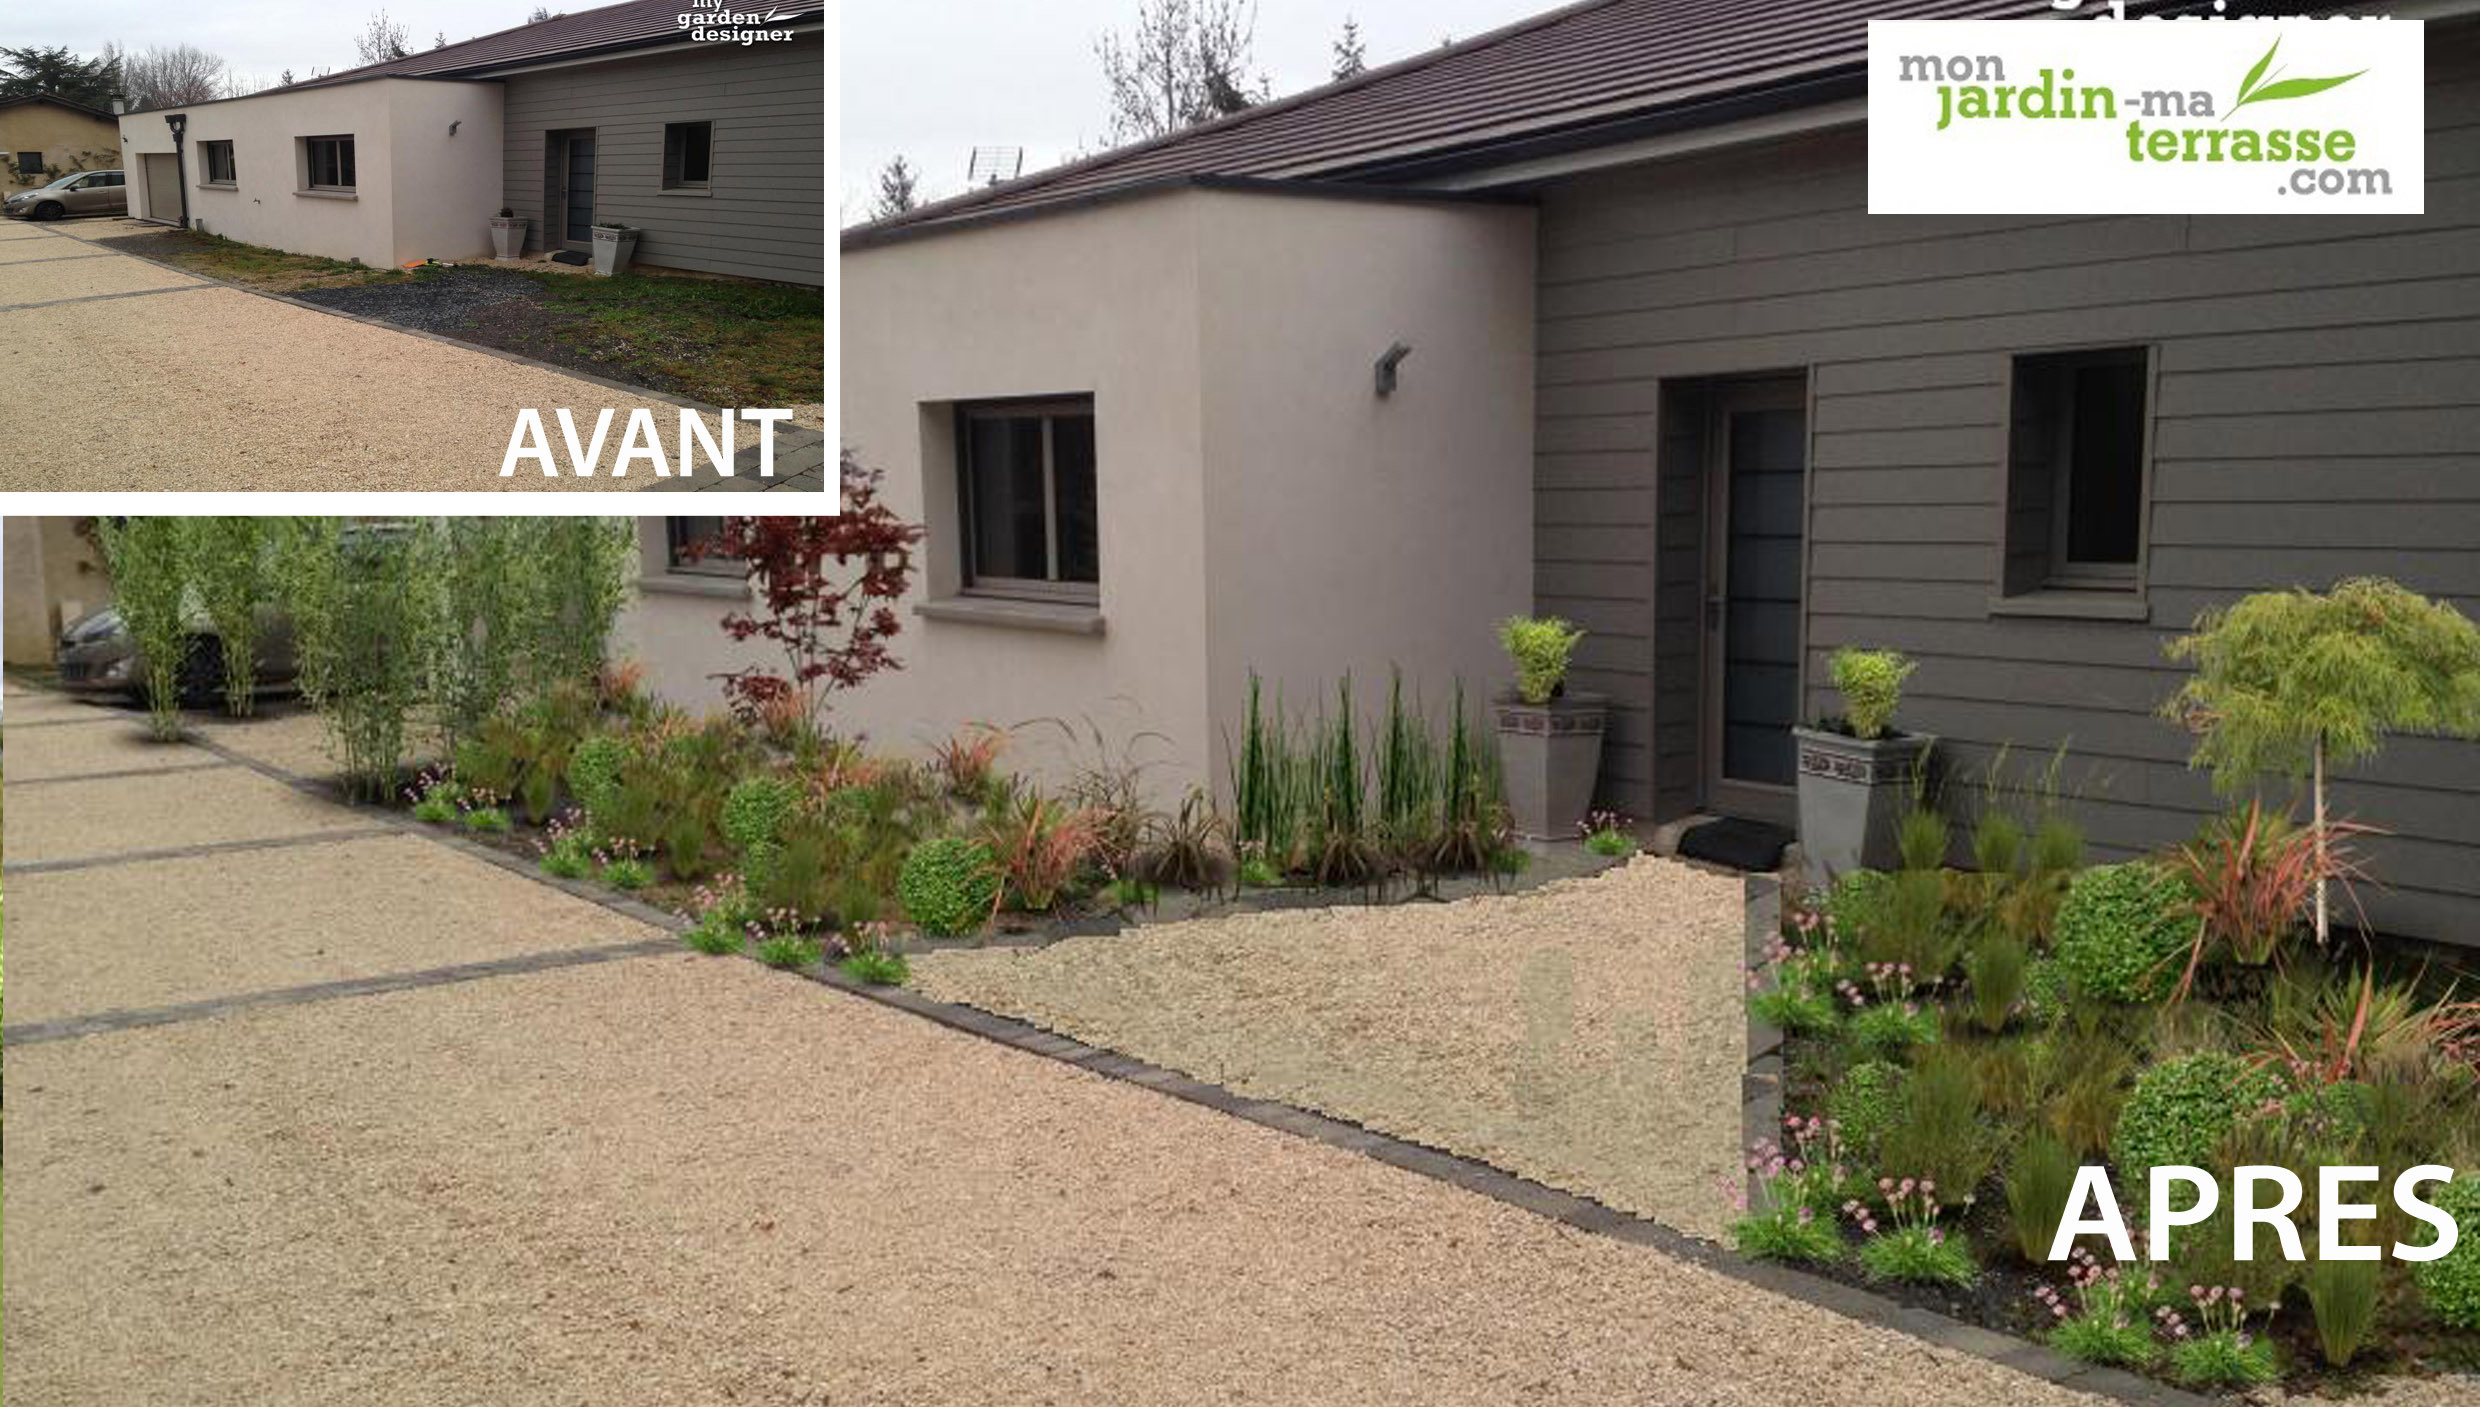 Am nagement du jardin de l entr e d une maison contemporaine monjardin - Amenagement de jardin ...